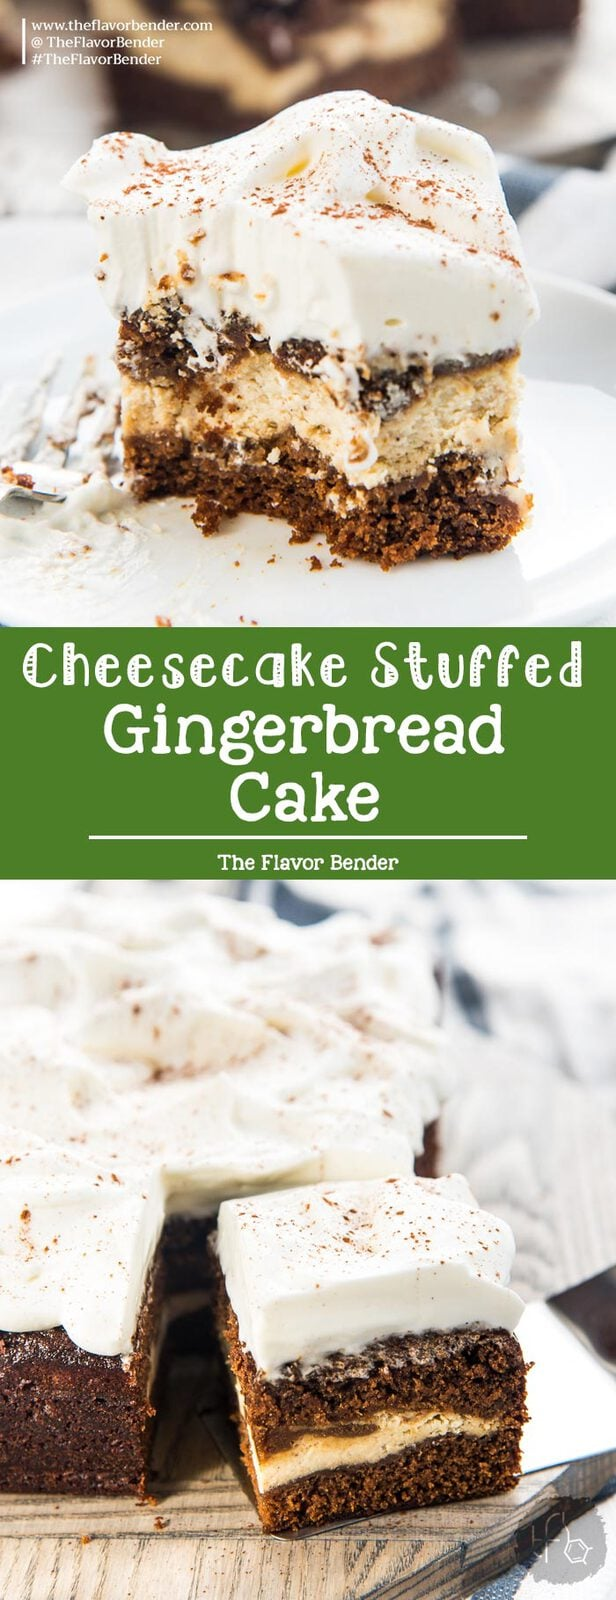 Cheesecake Stuffed Gingerbread Cake - Sweet, and spicy gingerbread cake with a fudgy, creamy hidden cheesecake layer inside! A double dessert in one cake that's perfect for the holidays. #HolidayCakes #Gingerbread #SecretLayerCakes #ChristmasCakes